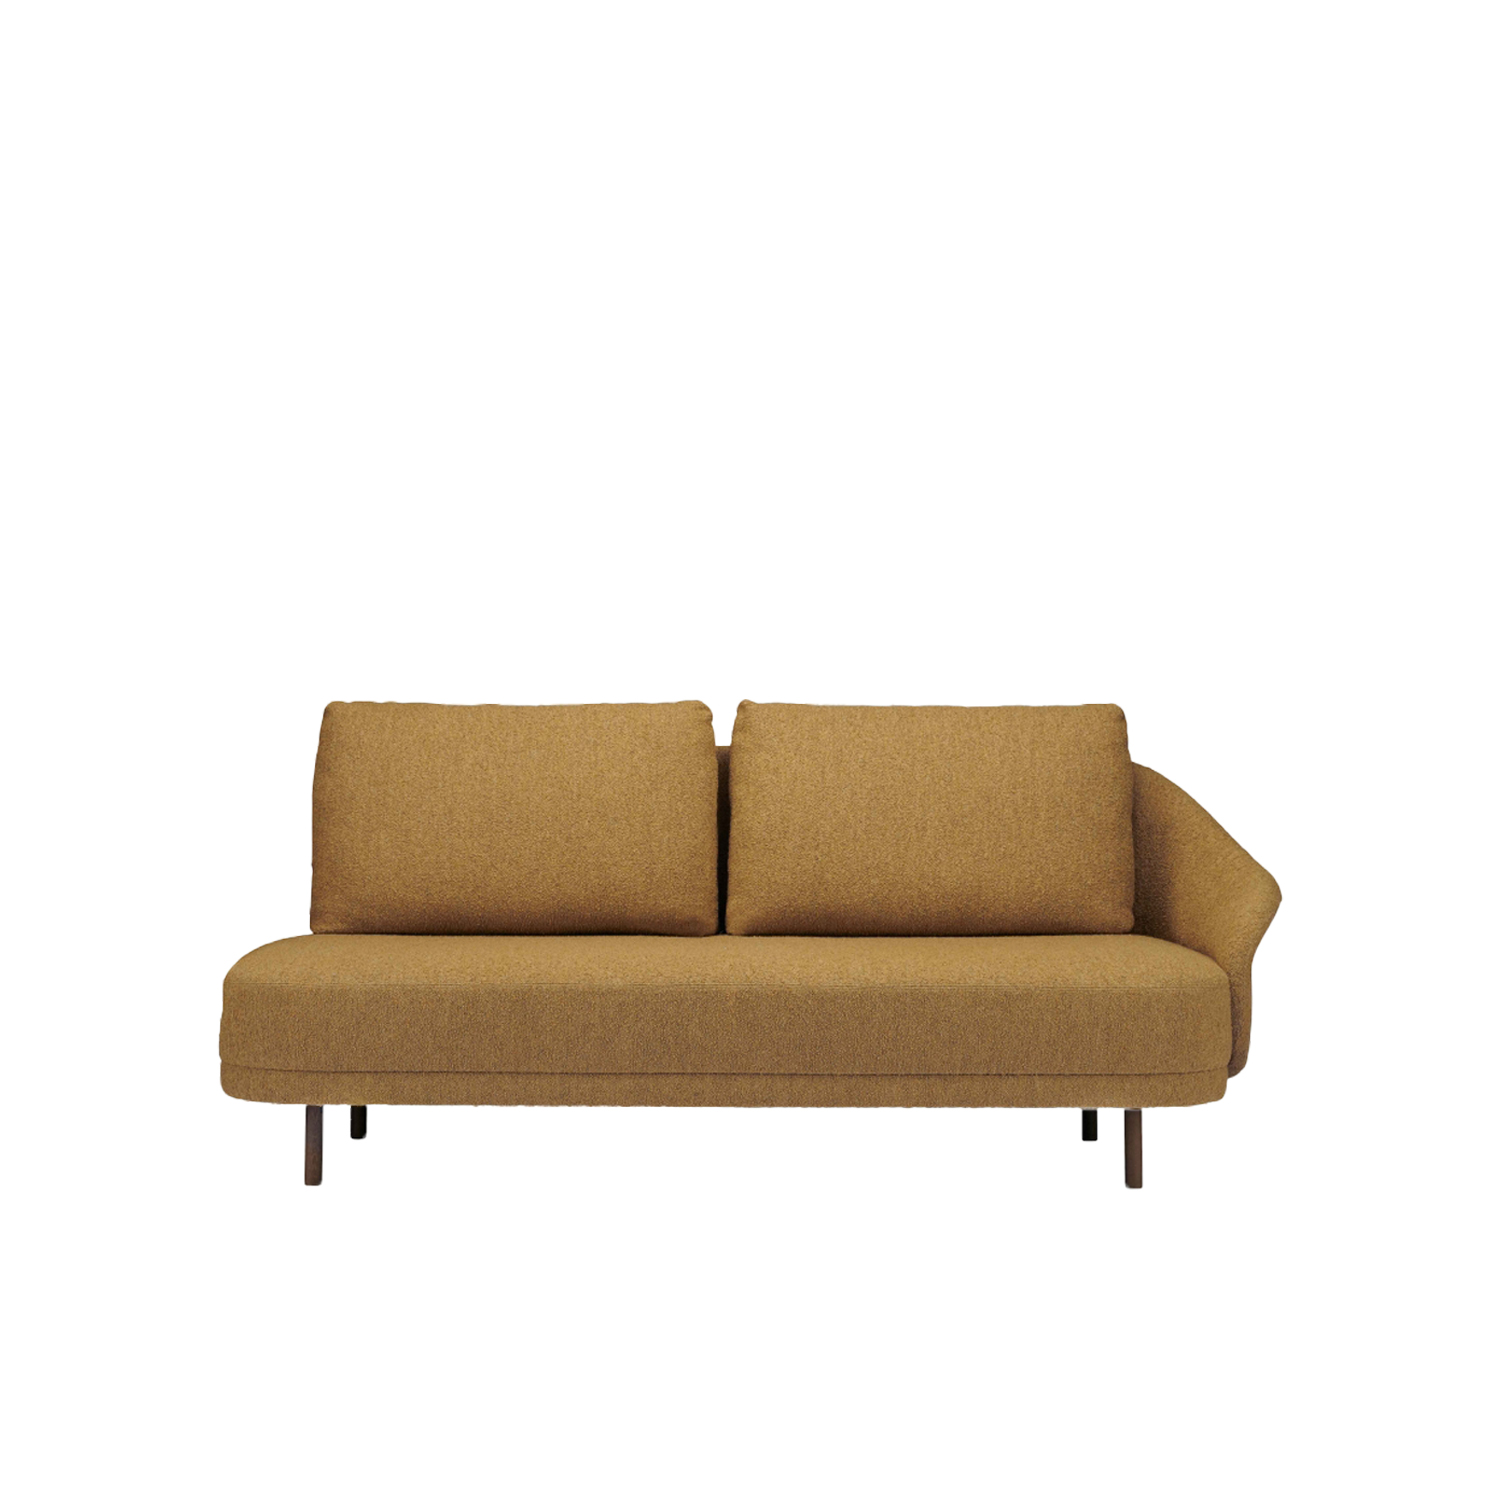 New Wave Open Ended Sofa - New Wave is a minimal sofa design inspired by Danish sofas from the 50's. New Wave's curvy design is reduced into three simple elements - base, back and cushion. Each element is carefully designed according to its function only, making the New Wave a both elegant and highly refined sofa design. The tight shape contrasted by soft cushions, makes New Wave equally at home in an office setting, hotel lobby or a residence.